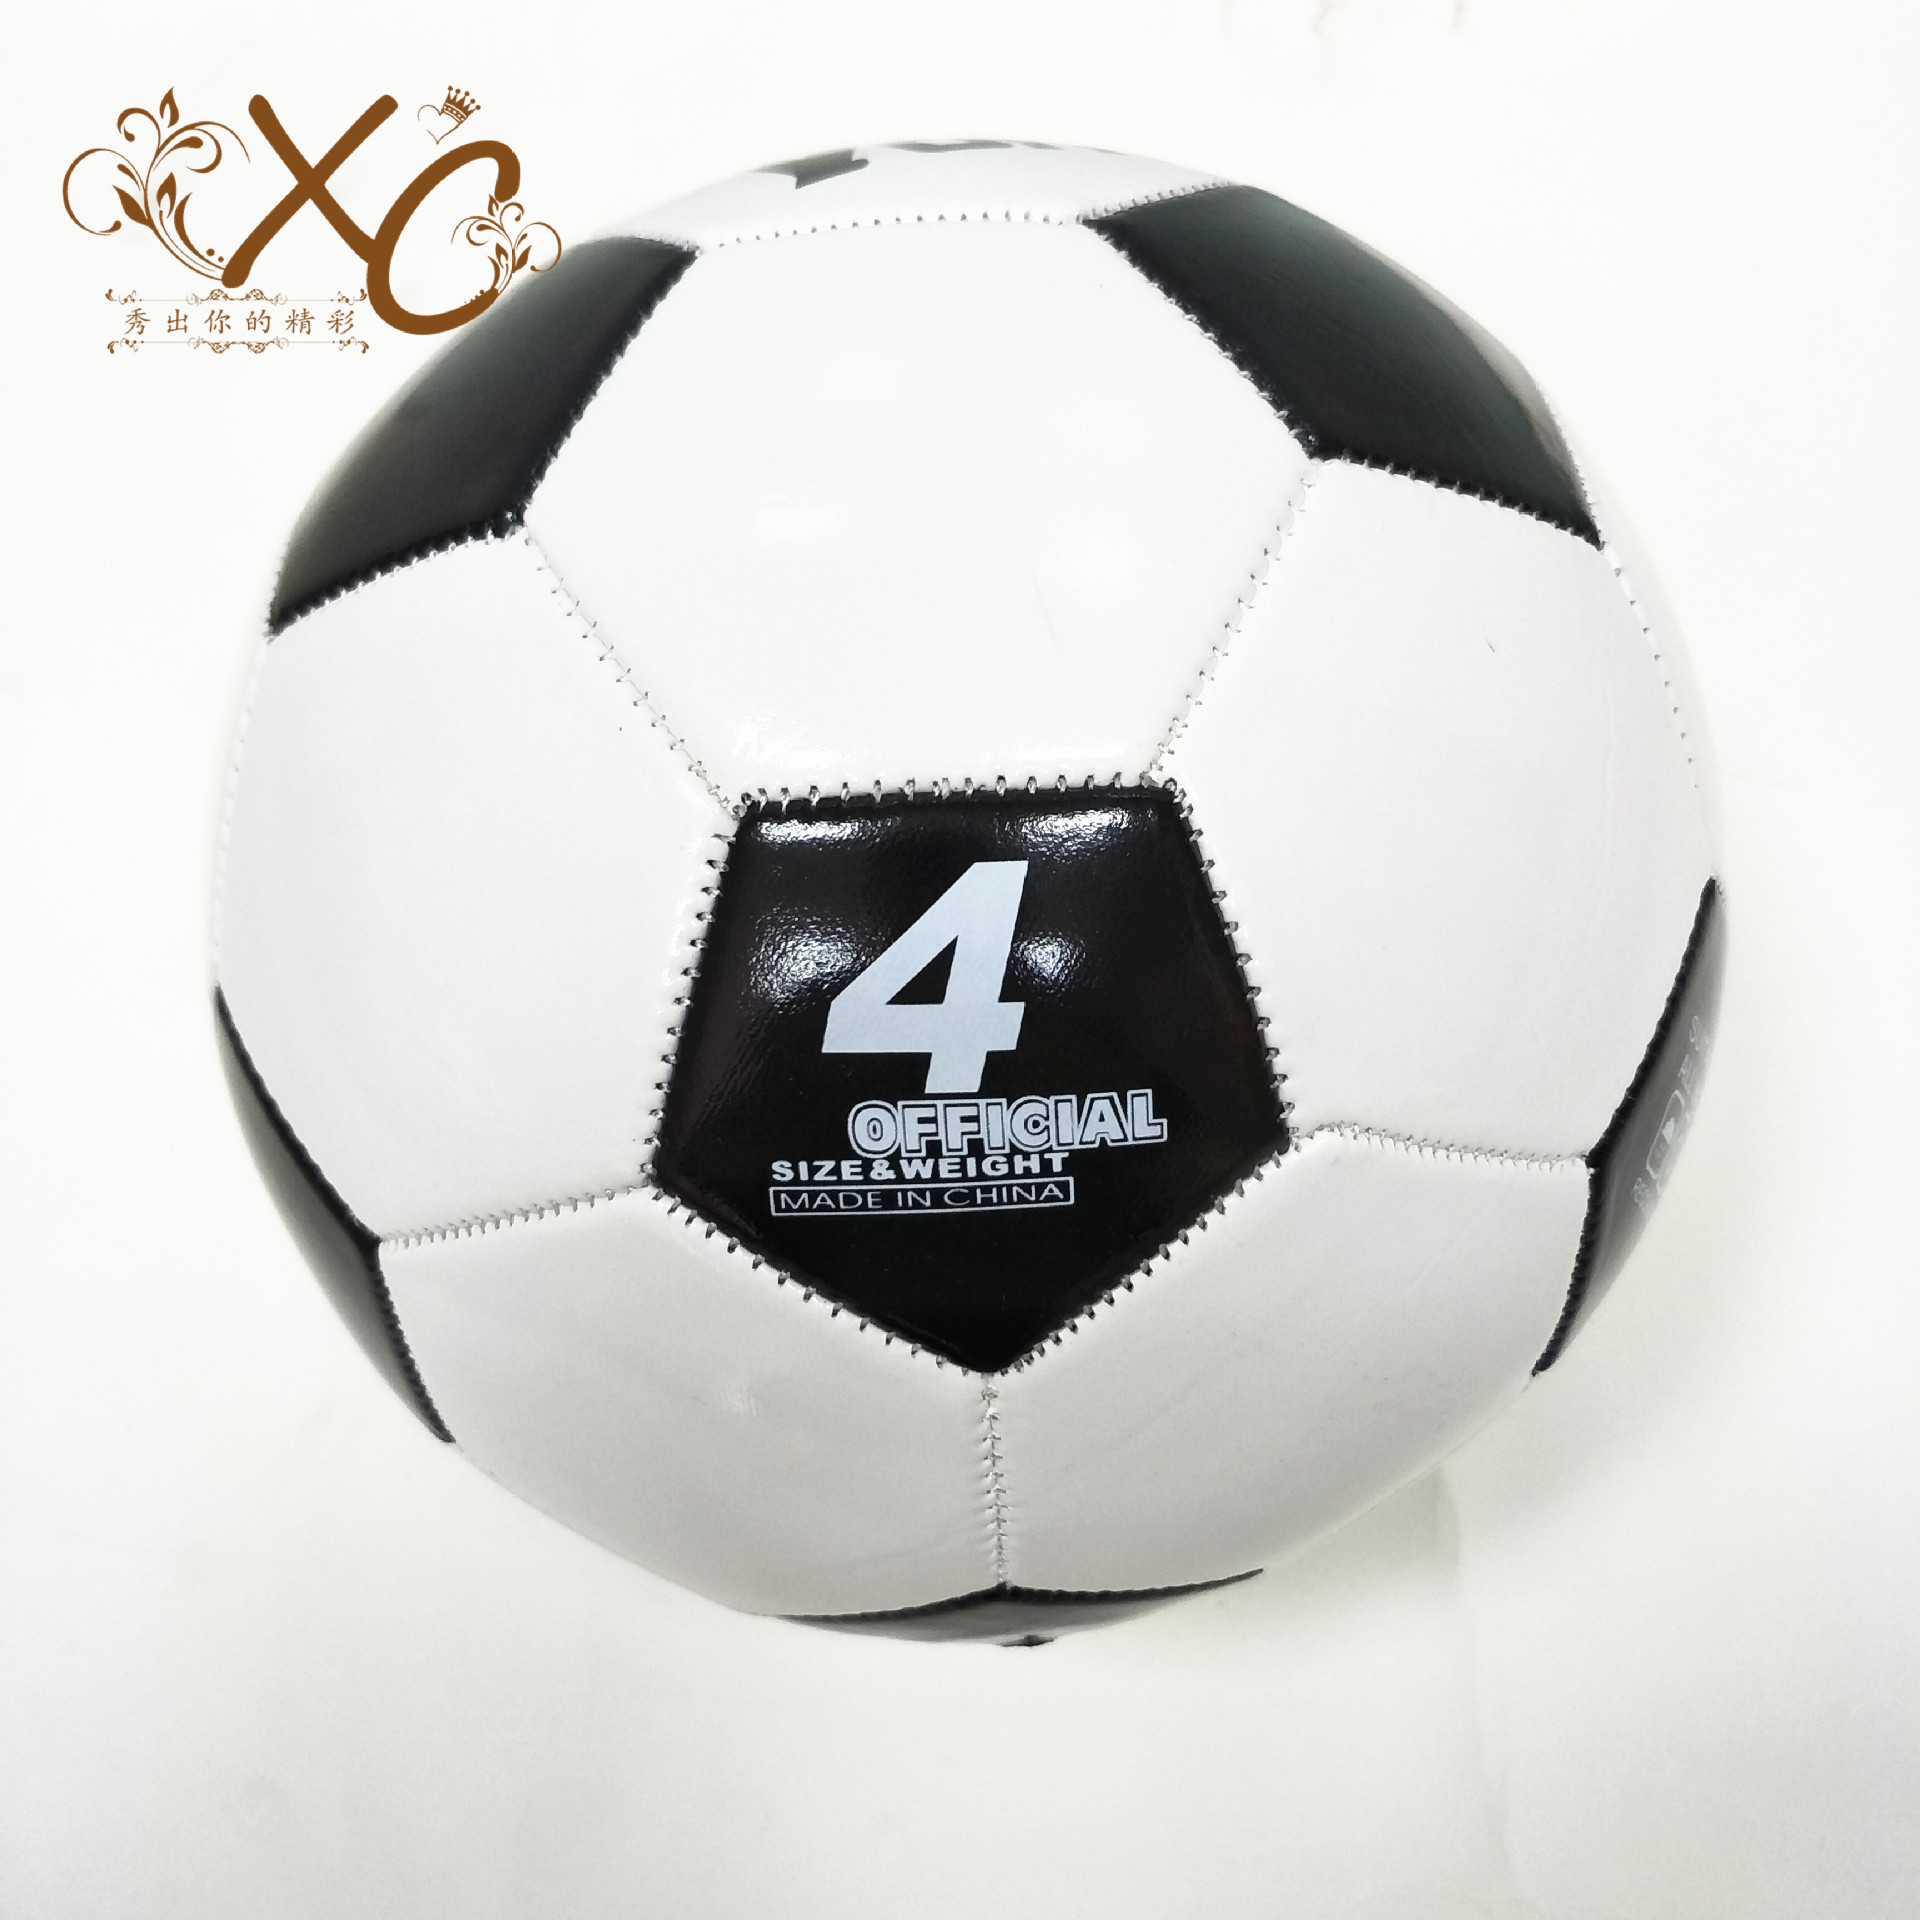 Size 4/5 Seamless PU Football Soccer Adult Student Game Training Profession Football Soccer Ball Football Ball